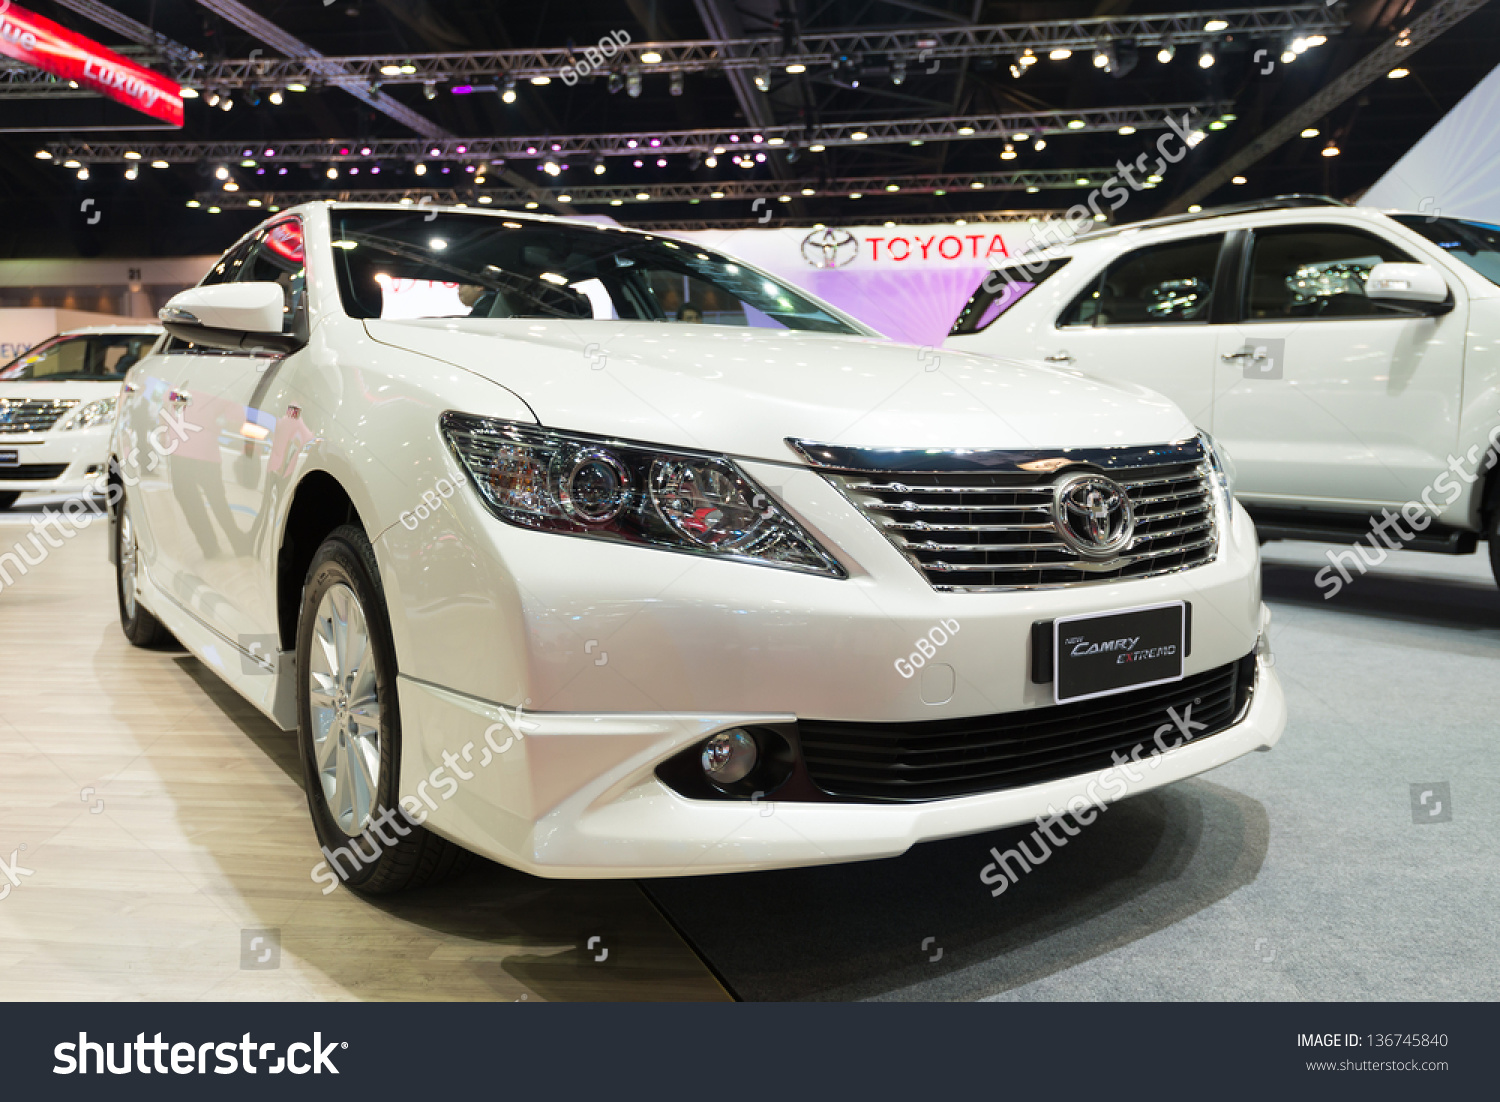 all new camry thailand kijang innova 2016 bekas bangkok march 26 toyota extremo on display